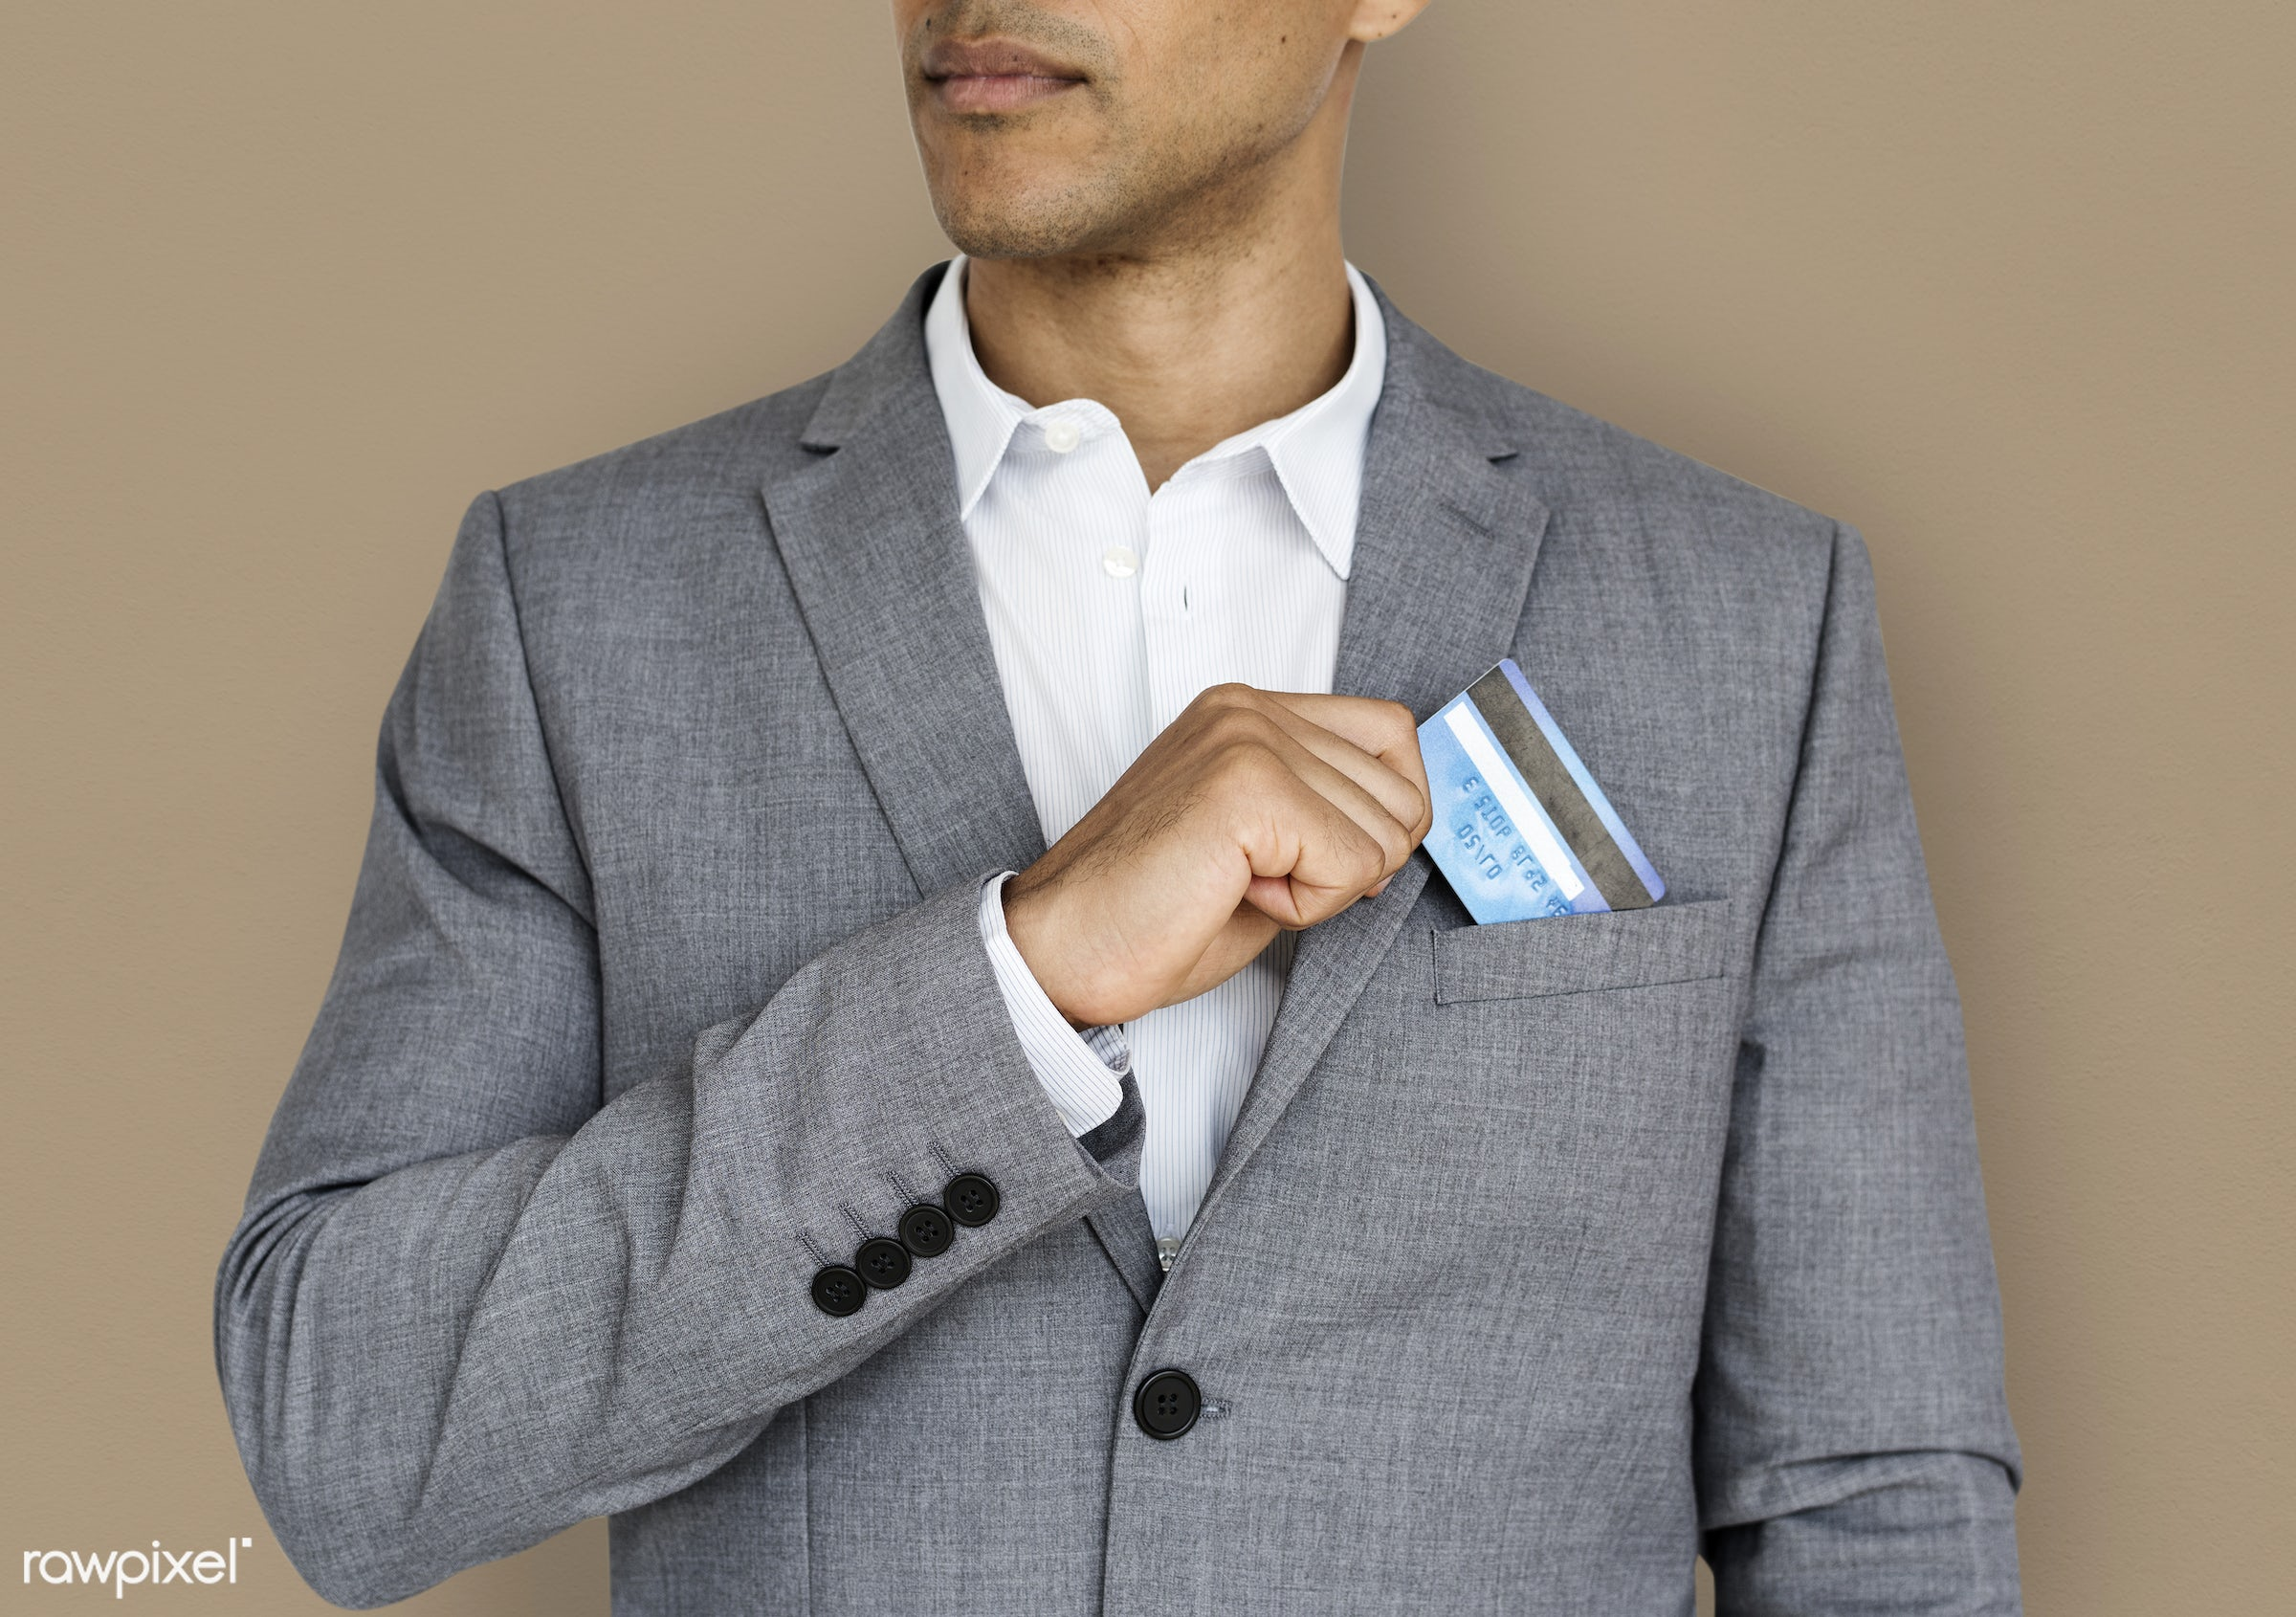 card, paying, adult, background, bill, business, business man, business wear, credit, credit card, expression, formal,...